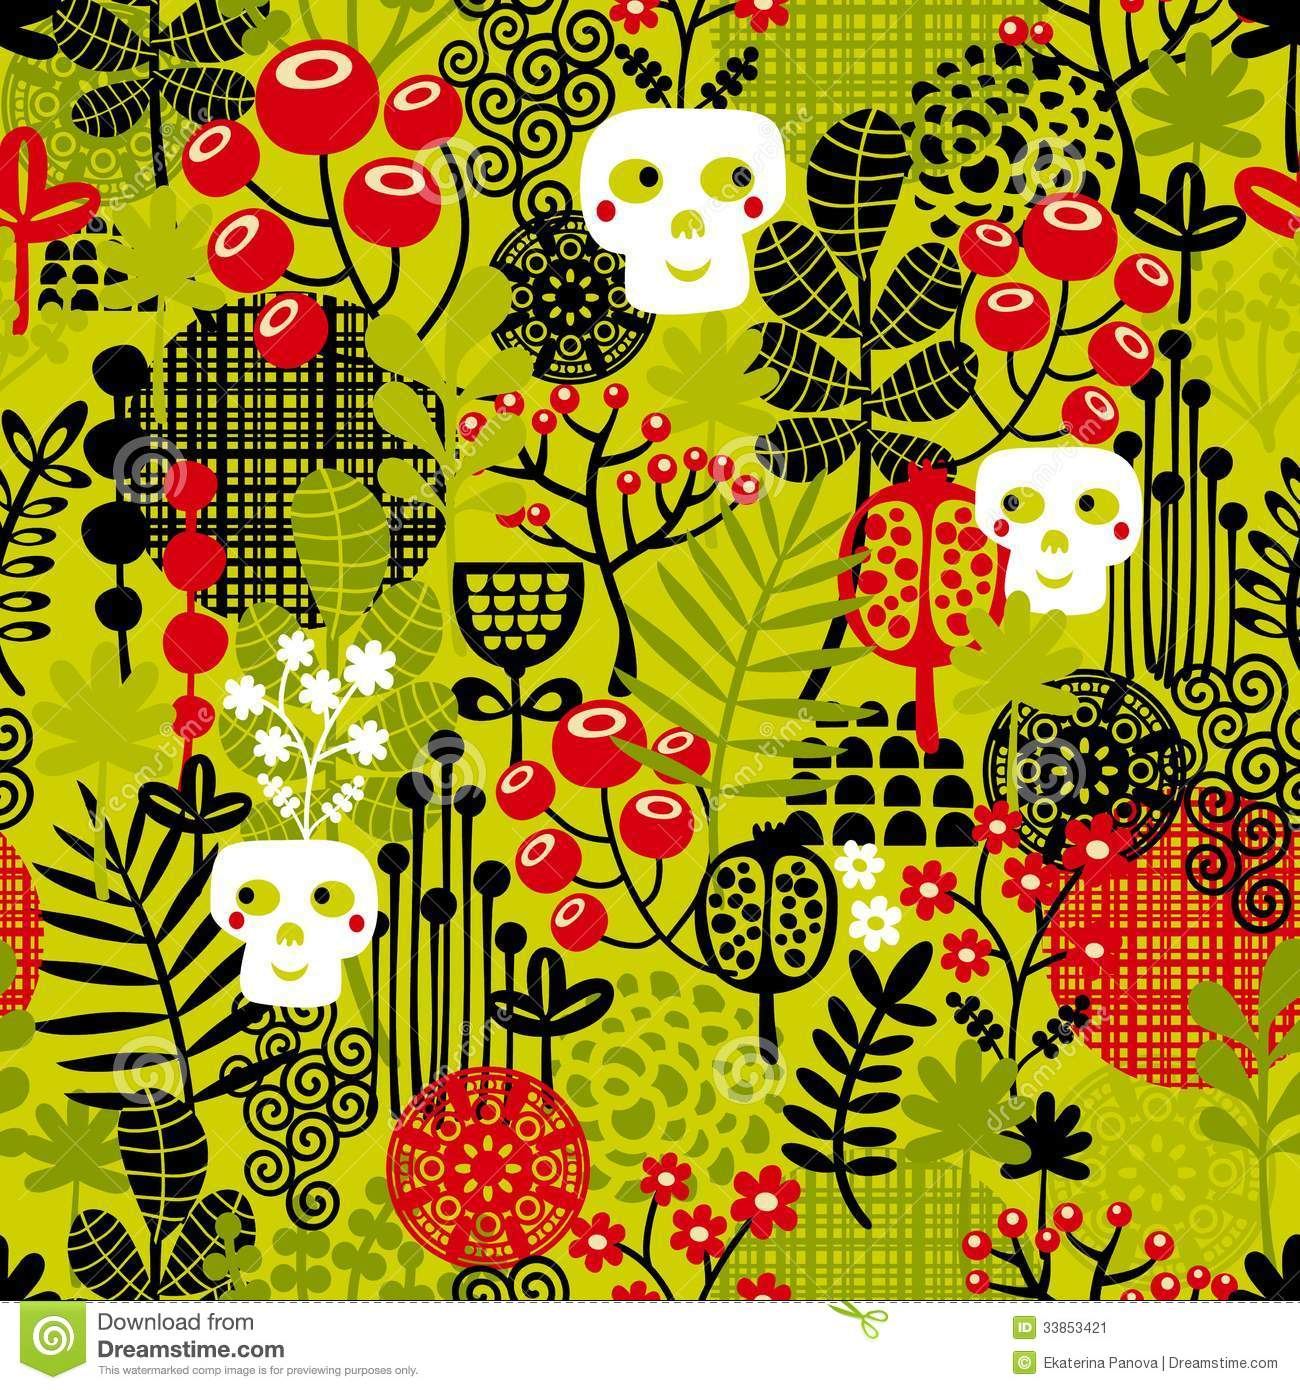 Backgrounds For Cute Halloween Zombie Background   www ...